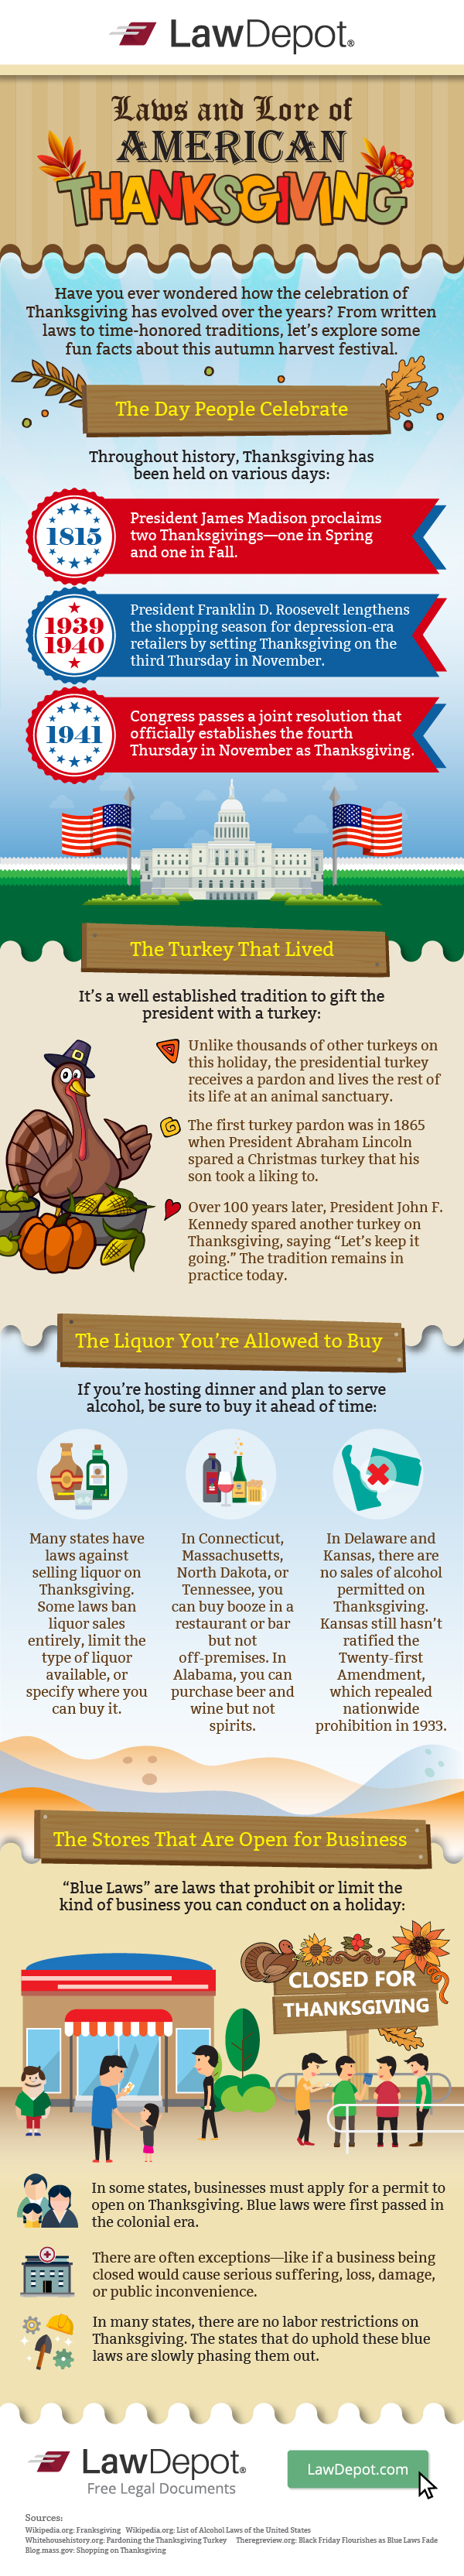 "Have you ever wondered how the celebration of Thanksgiving has evolved over the years? From written laws to time-honored traditions, let's explore some fun facts about this autumn harvest festival.  The Day People Celebrate Throughout history, Thanksgiving has been held on various days: 1815: President James Madison proclaims two Thanksgivings—one in spring and one in fall.  1939-1940: President Franklin D. Roosevelt lengthens the shopping season for depression-era retailers by setting Thanksgiving on the third Thursday in November. 1941: Congress passes a joint resolution that officially establishes the fourth Thursday in November as Thanksgiving.  The Turkey That Lived It's a well-established tradition to gift the president with a turkey:  Unlike thousands of other turkeys on this holiday, the presidential turkey receives a pardon and lives the rest of its life at an animal sanctuary. The first turkey pardon was in 1865 when President Abraham Lincoln spared a Christmas turkey that his son took a liking to. Over 100 years later, President John F. Kennedy spared another turkey on Thanksgiving, saying ""Let's keep it going."" The tradition remains in practice today. The Liquor You're Allowed to Buy If you're hosting dinner and plan to serve alcohol, be sure to buy it ahead of time: Many states have laws against selling liquor on Thanksgiving. Some laws ban liquor sales entirely, limit the type of liquor available, or specify where you can buy it. In Connecticut, Massachusetts, North Dakota, or Tennessee, you can buy booze in a restaurant or bar but not off-premises. In Alabama, you can purchase beer and wine but not spirits. In Delaware and Kansas,there are no sales of alcohol permitted on Thanksgiving. Kansas still hasn't ratified the Twenty-first Amendment, which repealed nationwide prohibition in 1933. The Stores That Are Open for Business ""Blue Laws"" are laws that prohibit or limit the kind of business you can conduct on a holiday: In some states, businesses must apply for a permit to open on Thanksgiving. Blue laws were first passed in the colonial era.  There are often exceptions—like if a business being closed would cause serious suffering, loss, damage, or public inconvenience.  In many states, there are no labor restrictions on Thanksgiving. The states that do uphold these blue laws are slowly phasing them out."